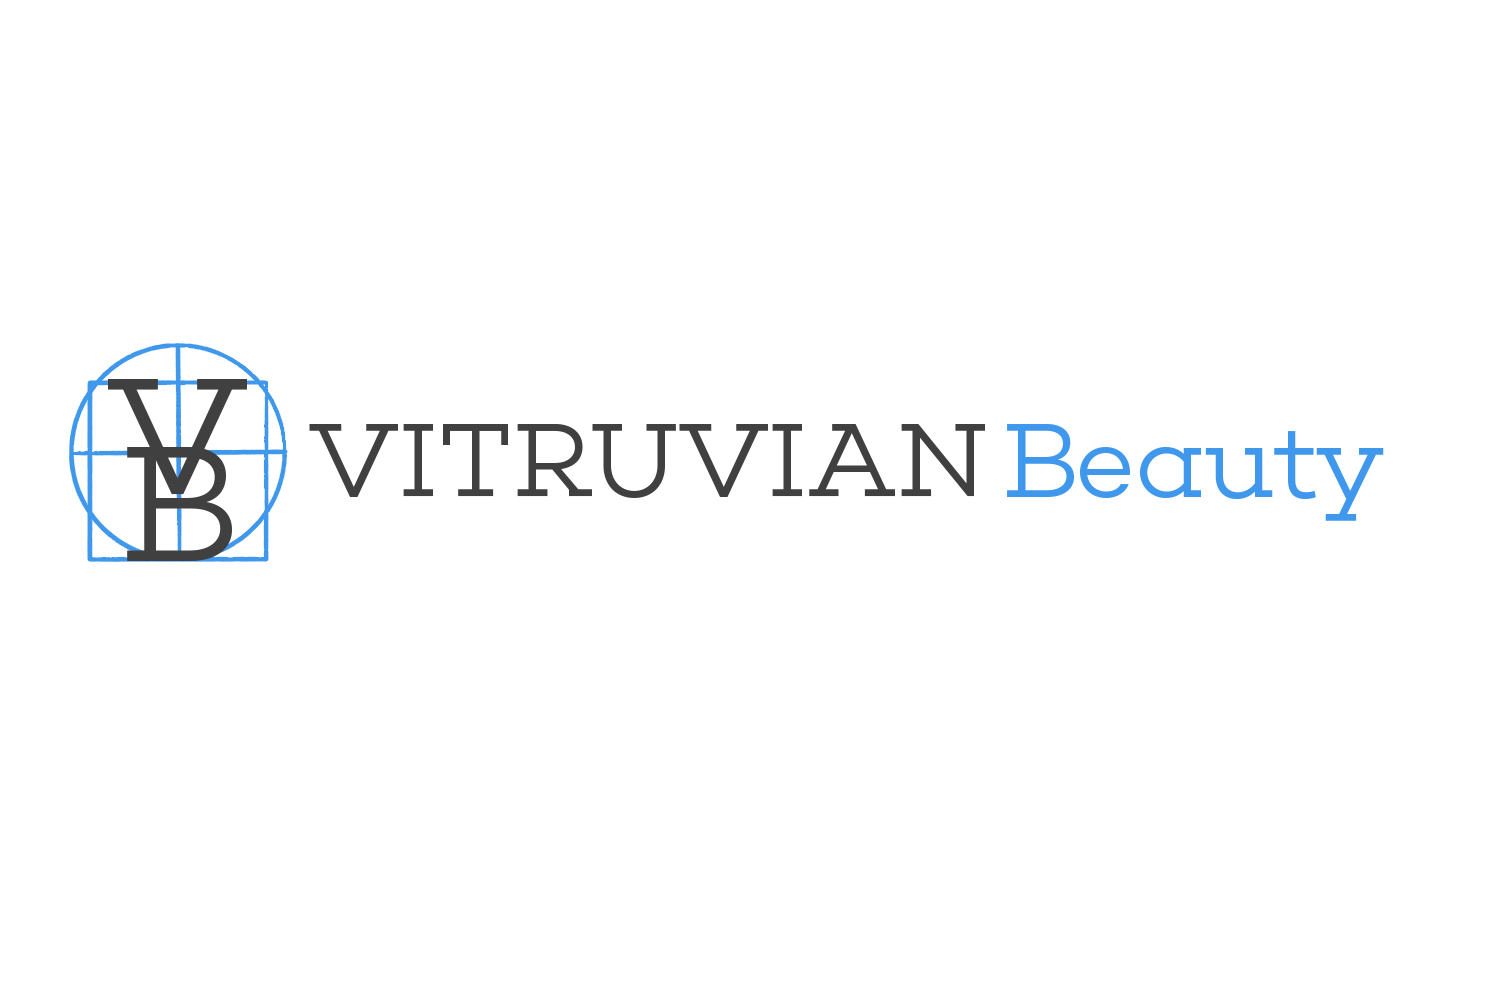 Vitruvian Beauty Logo